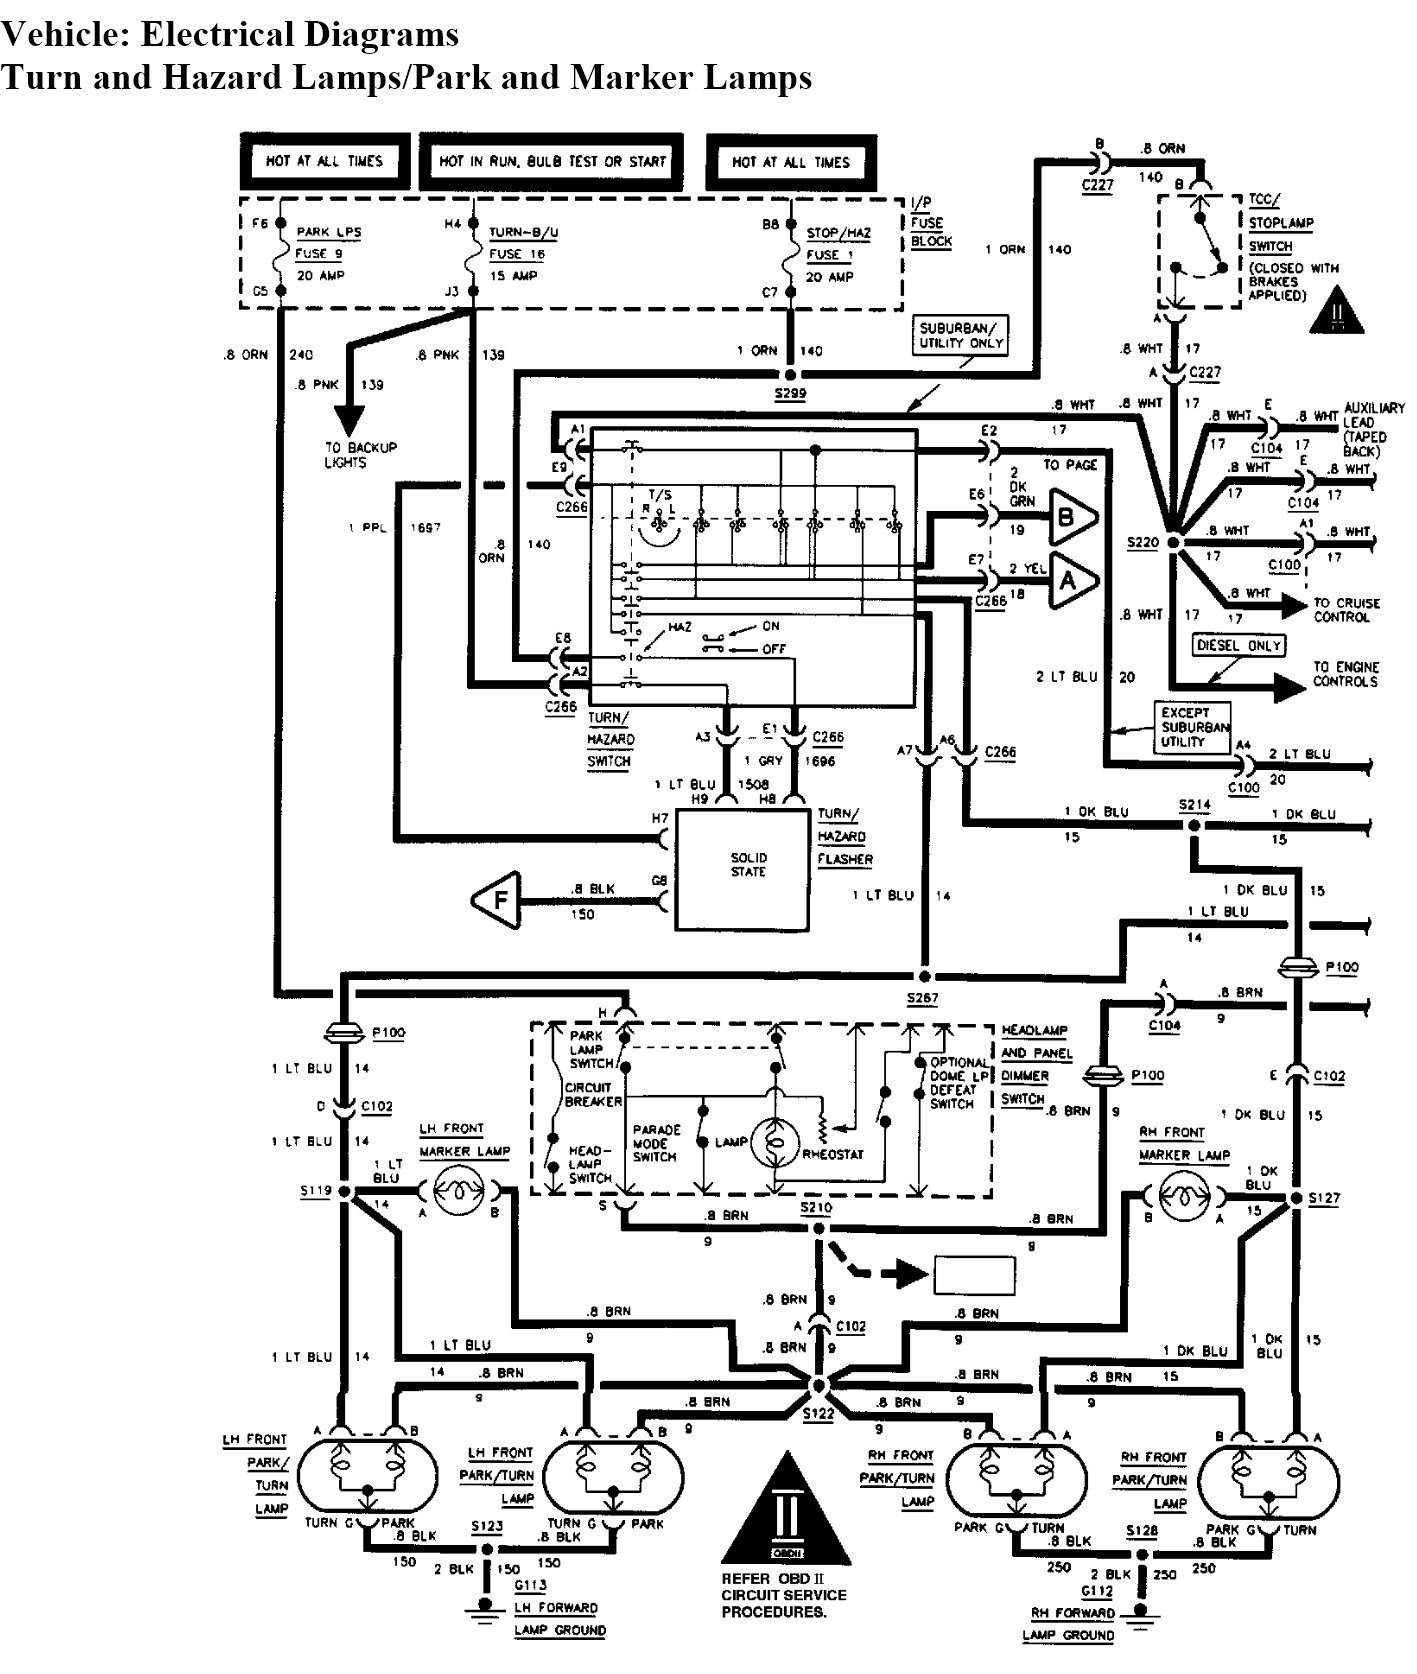 Jeep Grand Cherokee Trailer Brake Wiring Diagram - 1967 Pontiac Tachometer Wiring  Diagram for Wiring Diagram SchematicsWiring Diagram Schematics